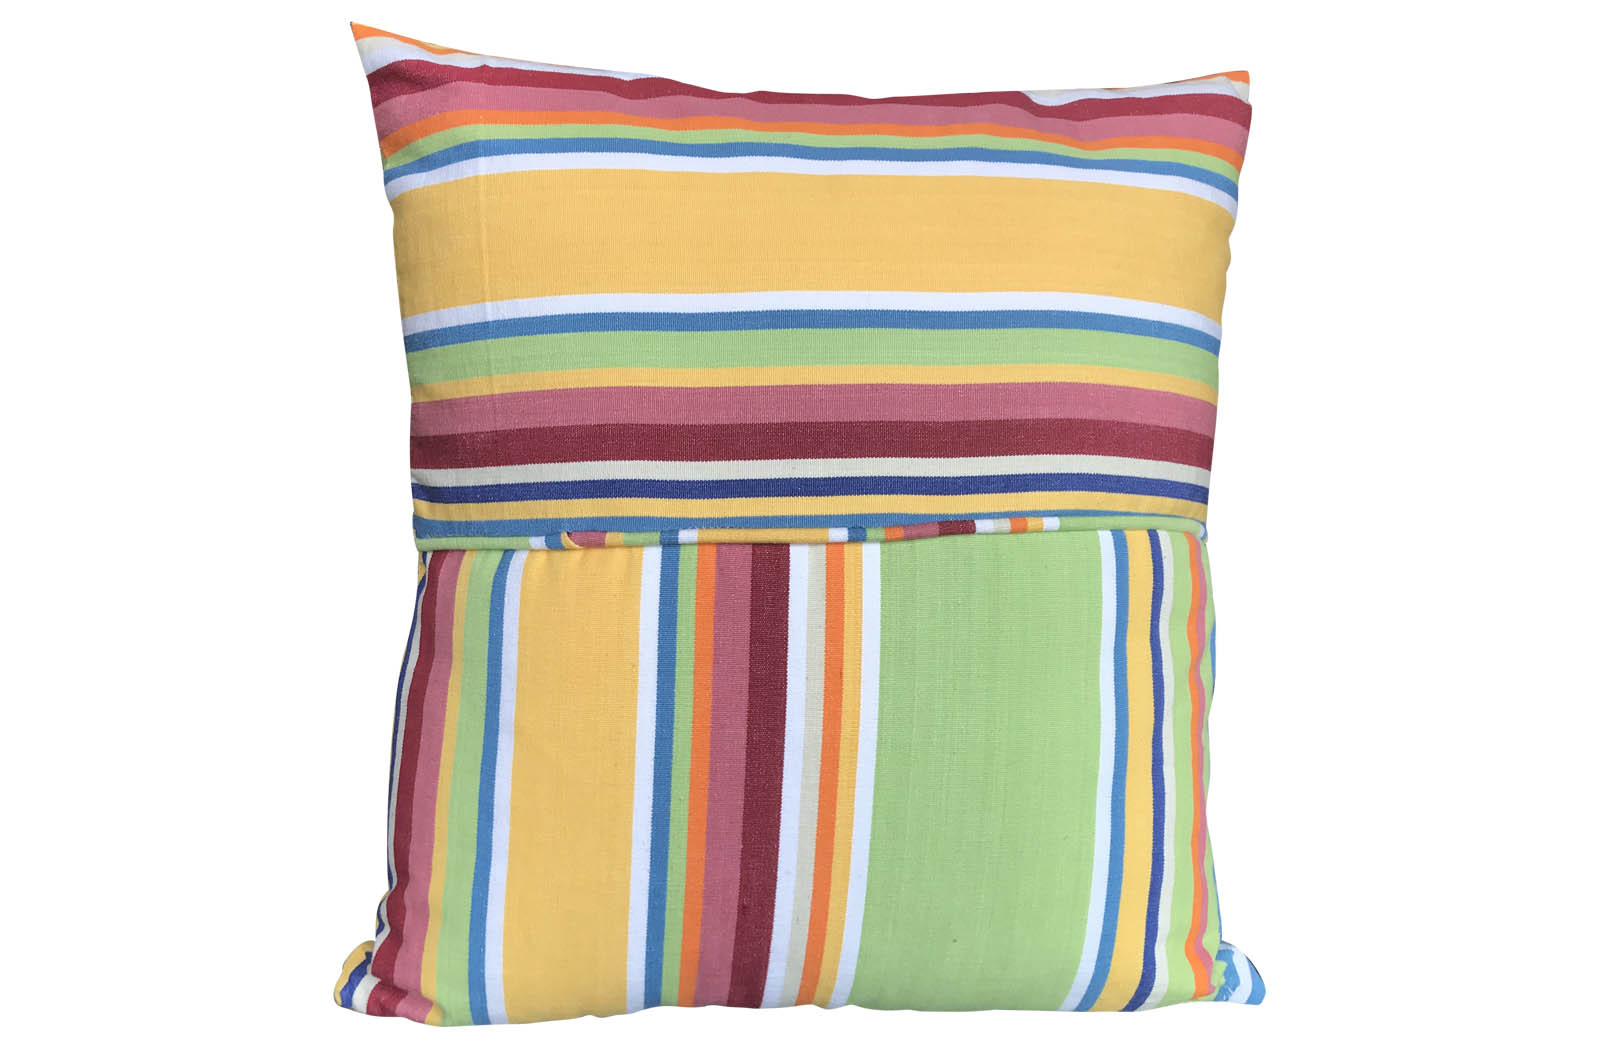 Striped Piped Cushions | Square Piped Cushions yellow, green, blue